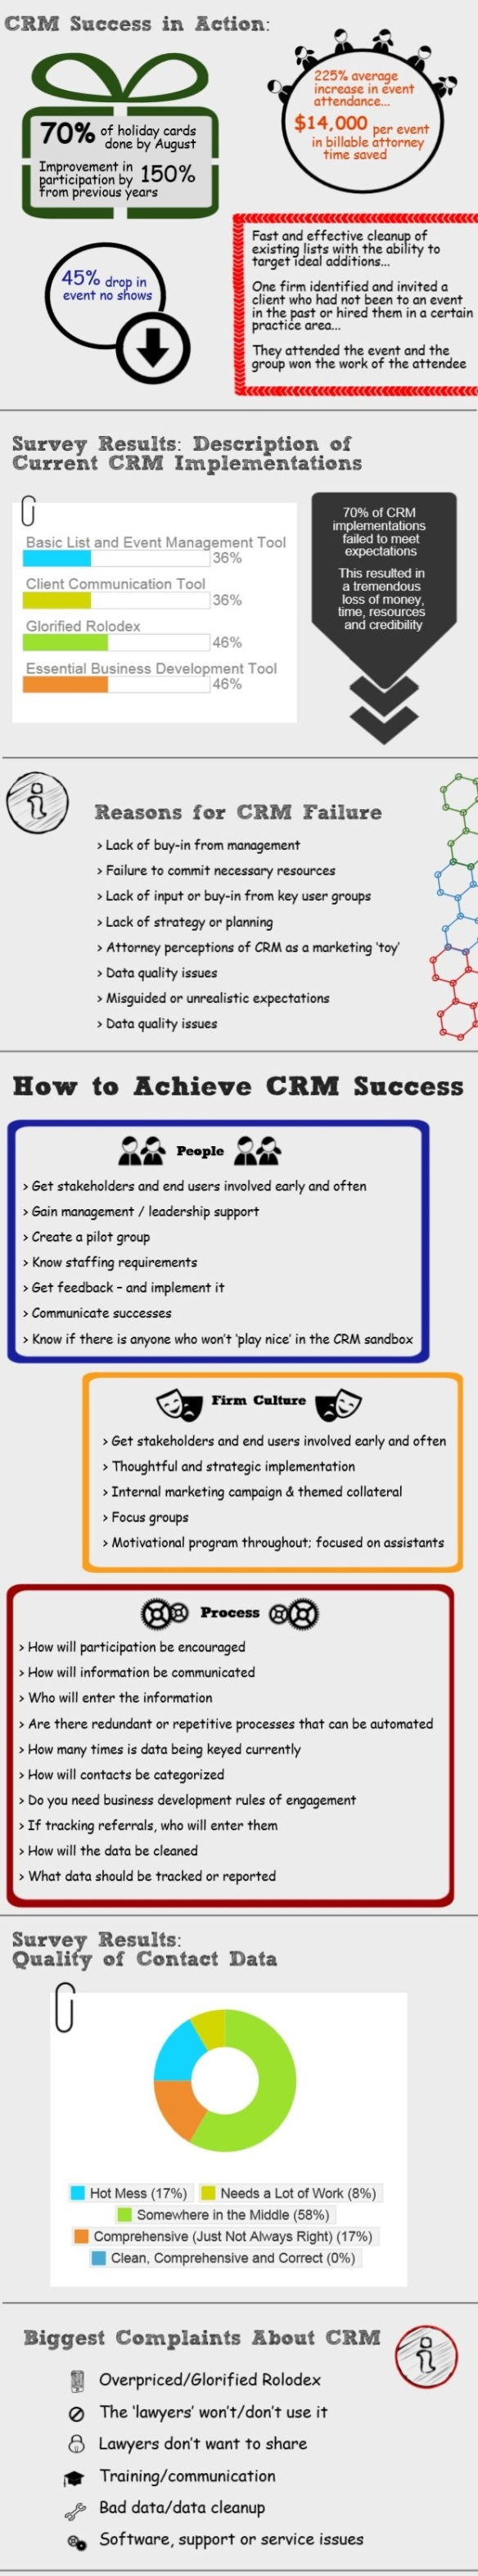 CRM & EMail Marketing Not Sexy But Essential